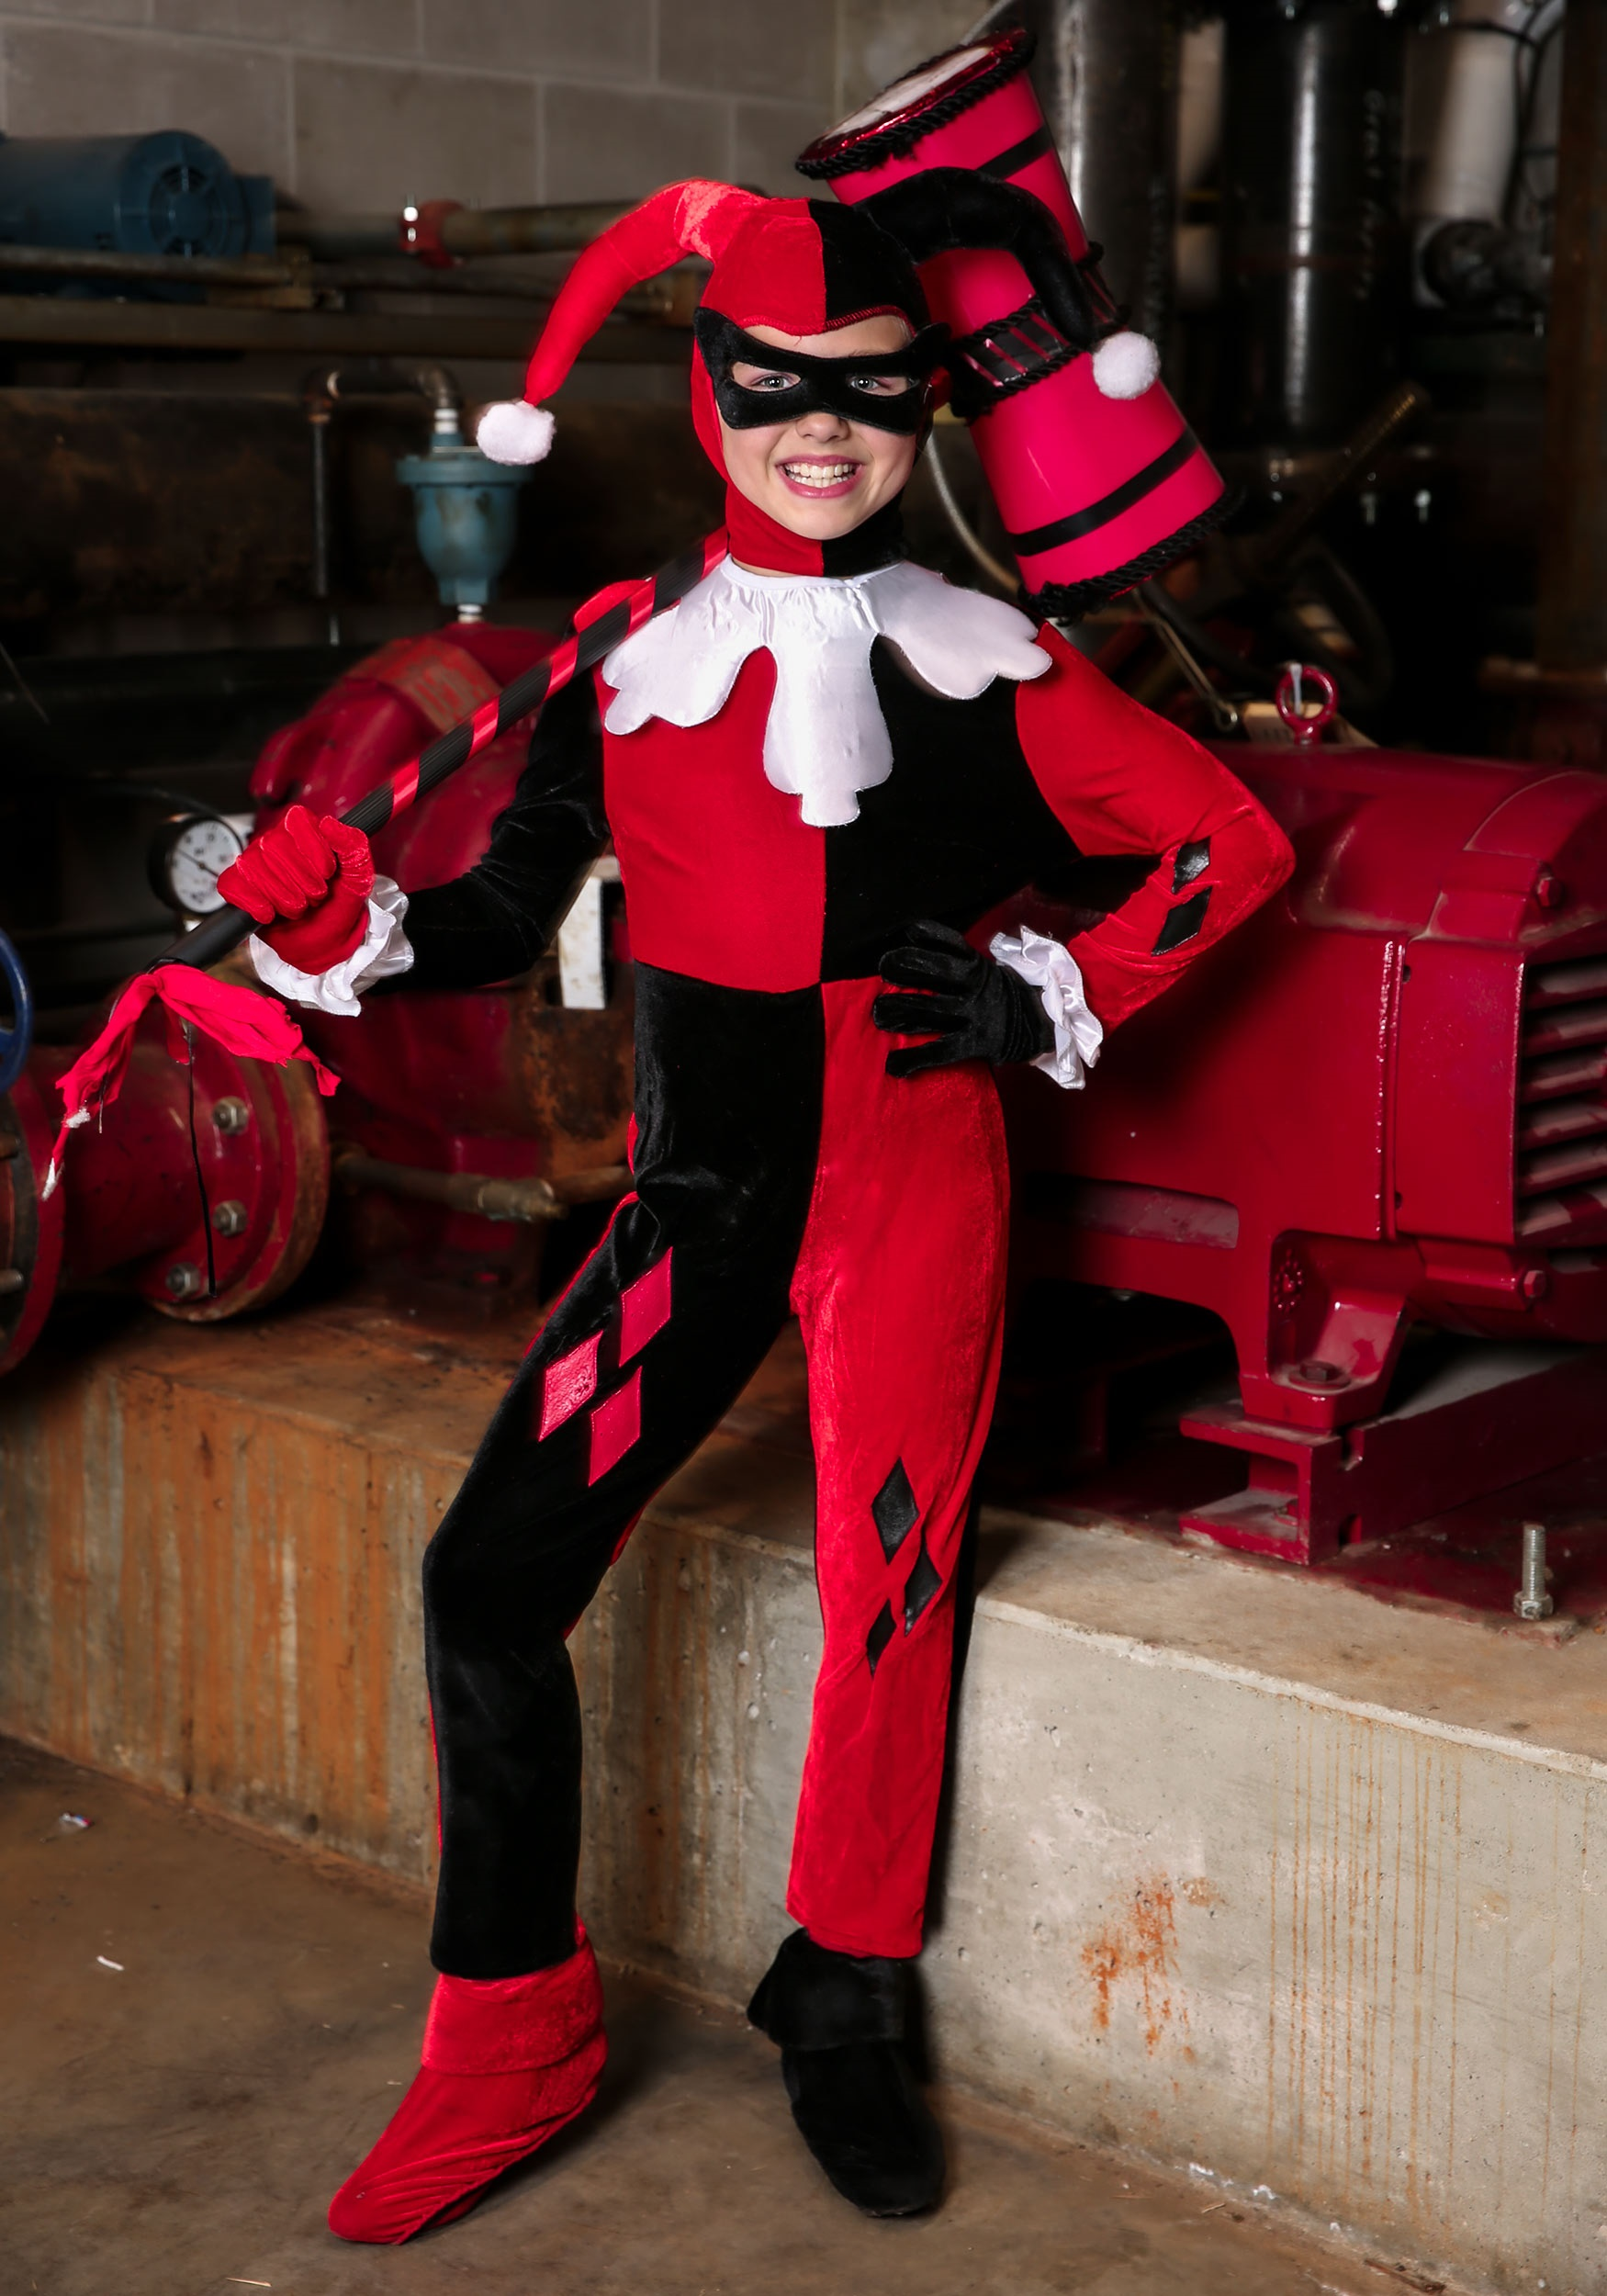 harley quinn costumes for kids, women